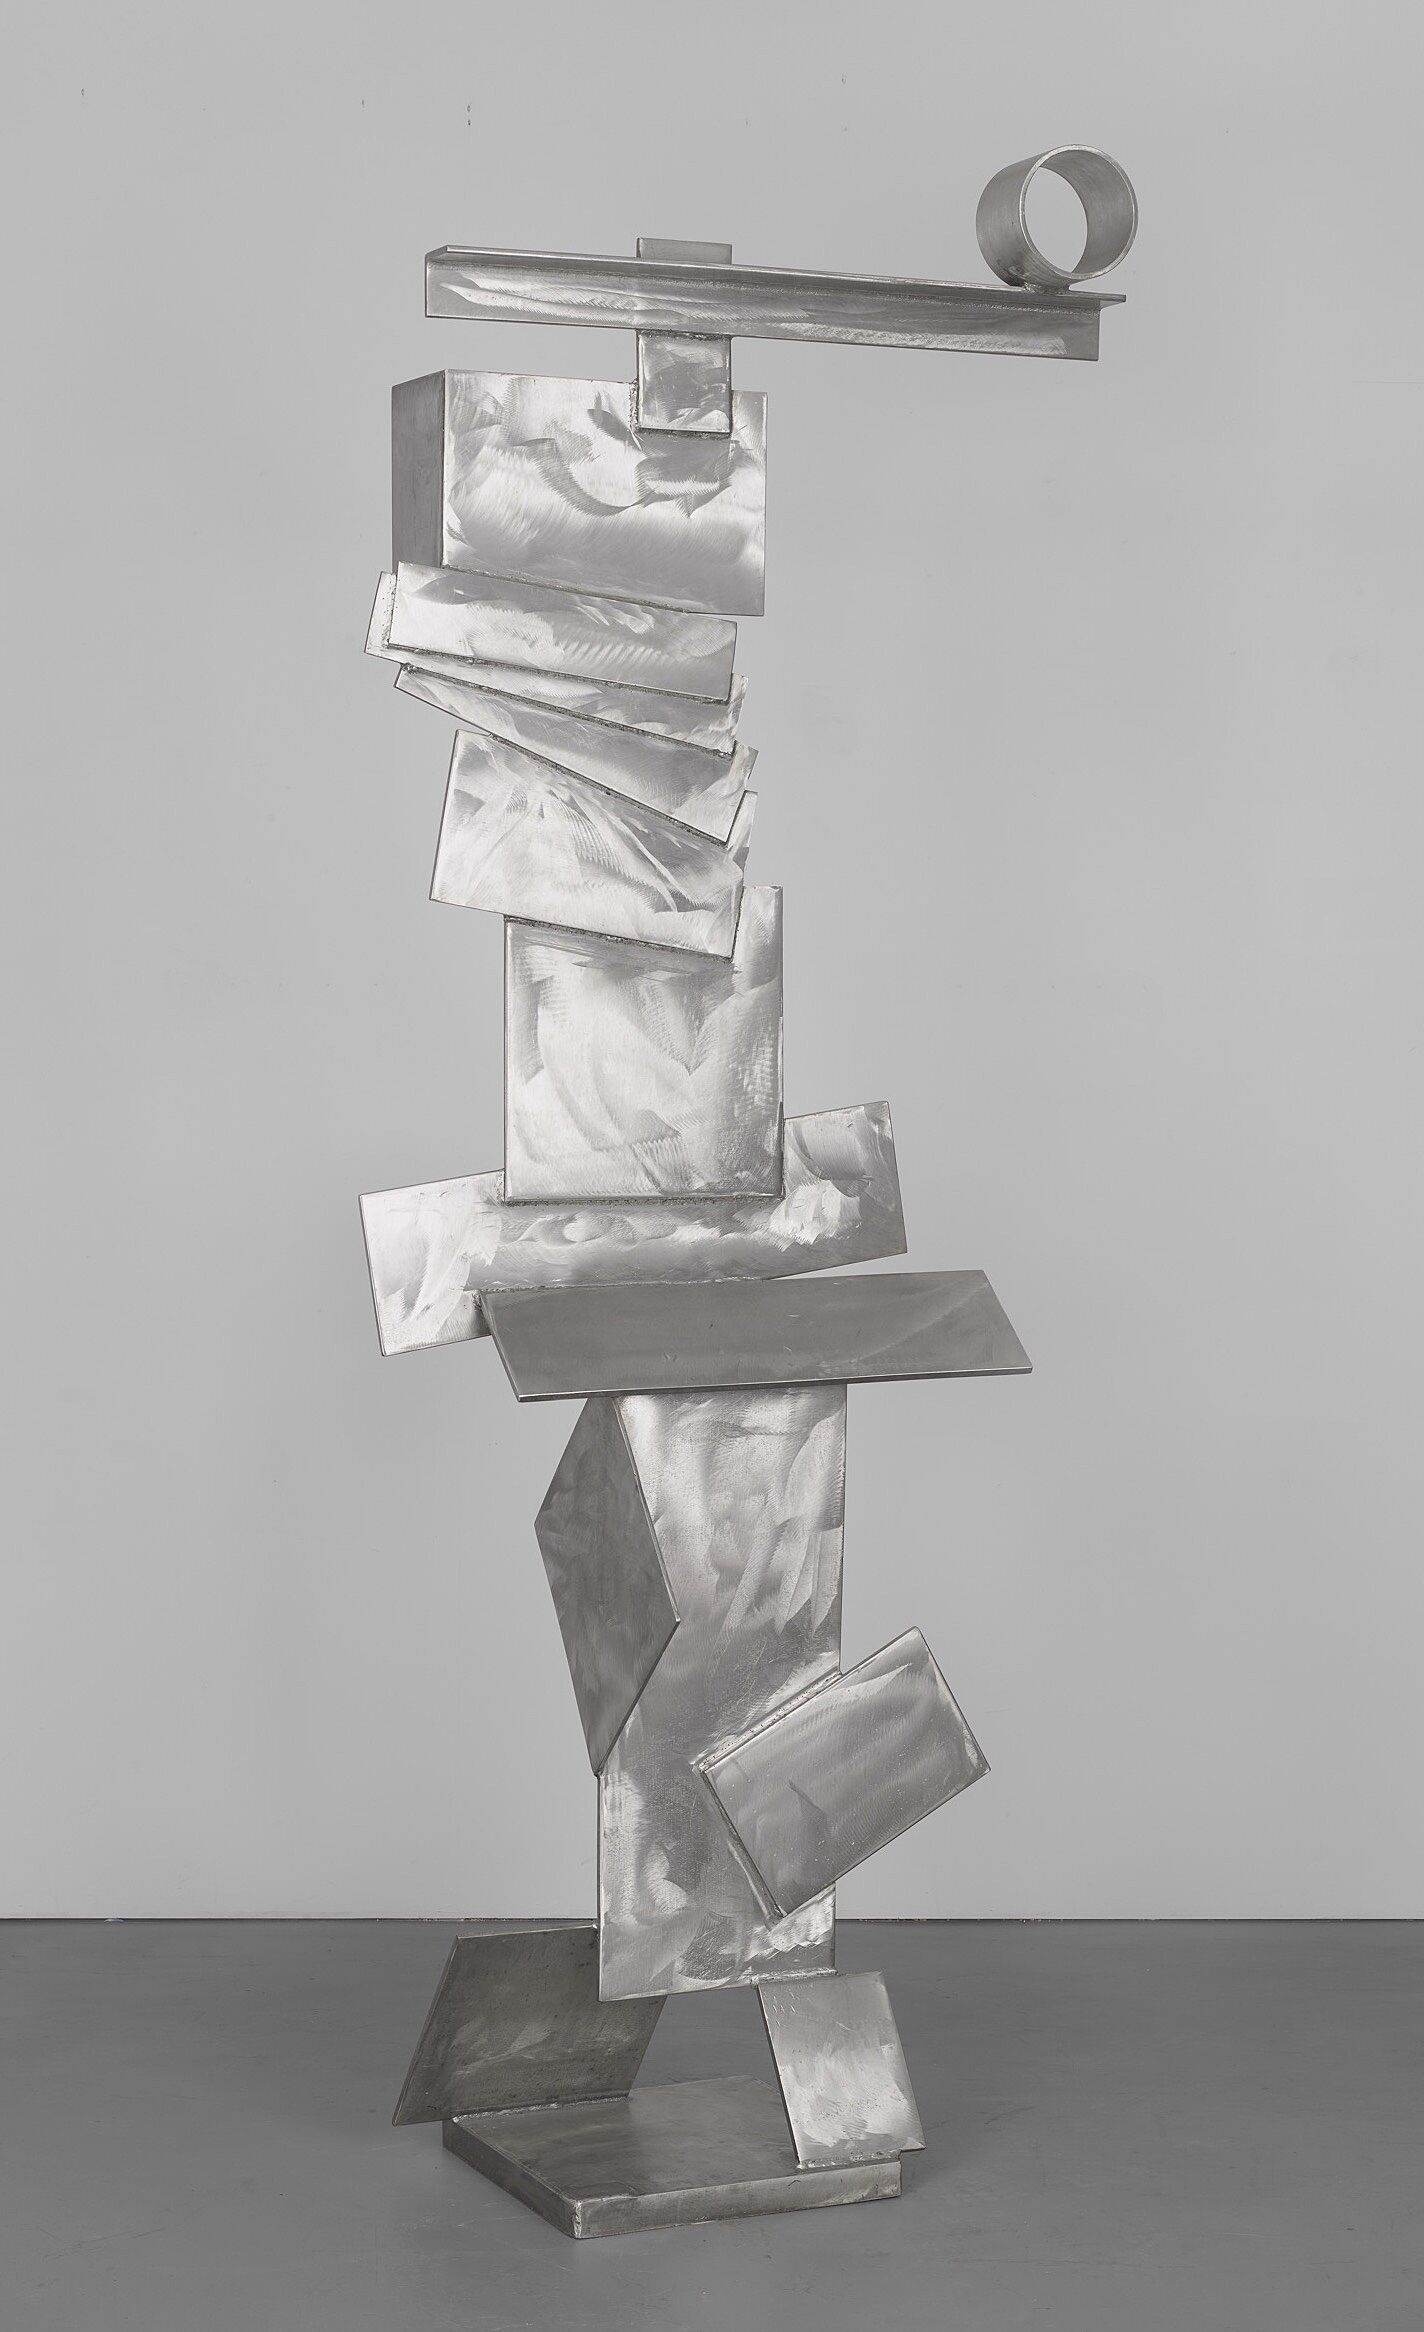 A photo of an abstract steel sculpture.